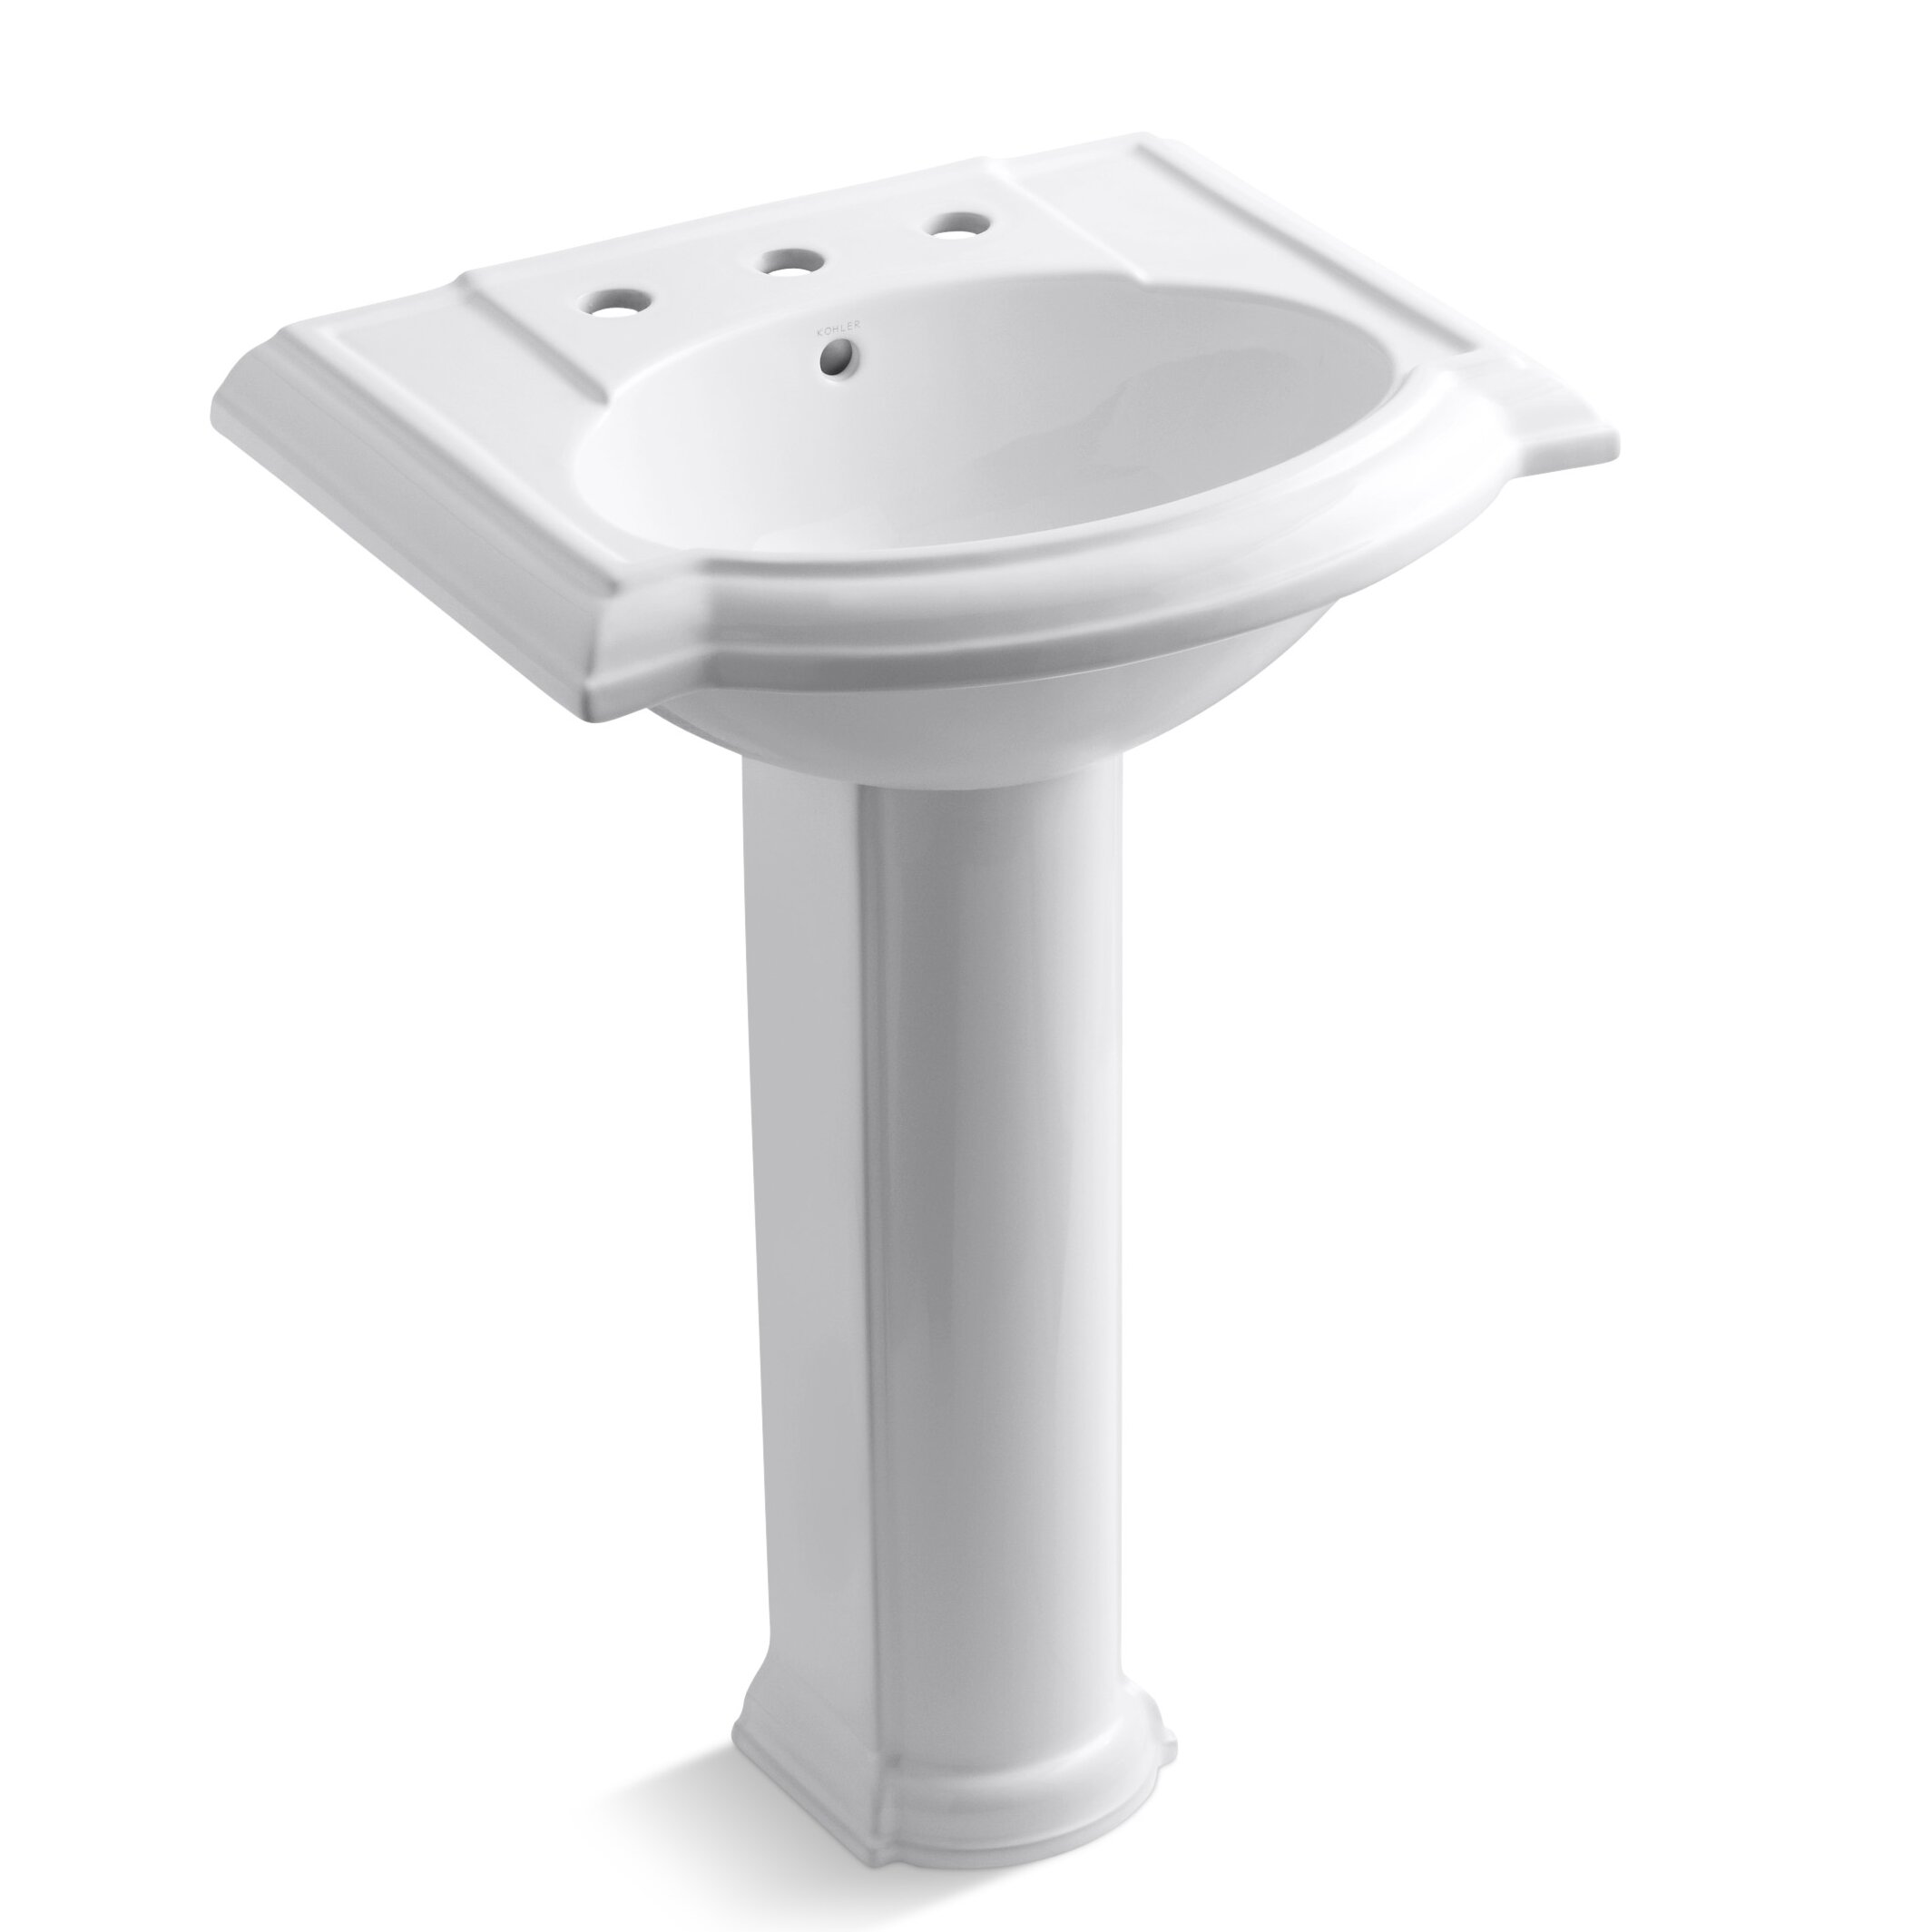 Kohler Devonshire 24 quot  Pedestal Bathroom Sink. Kohler Devonshire 24  Pedestal Bathroom Sink   Reviews   Wayfair